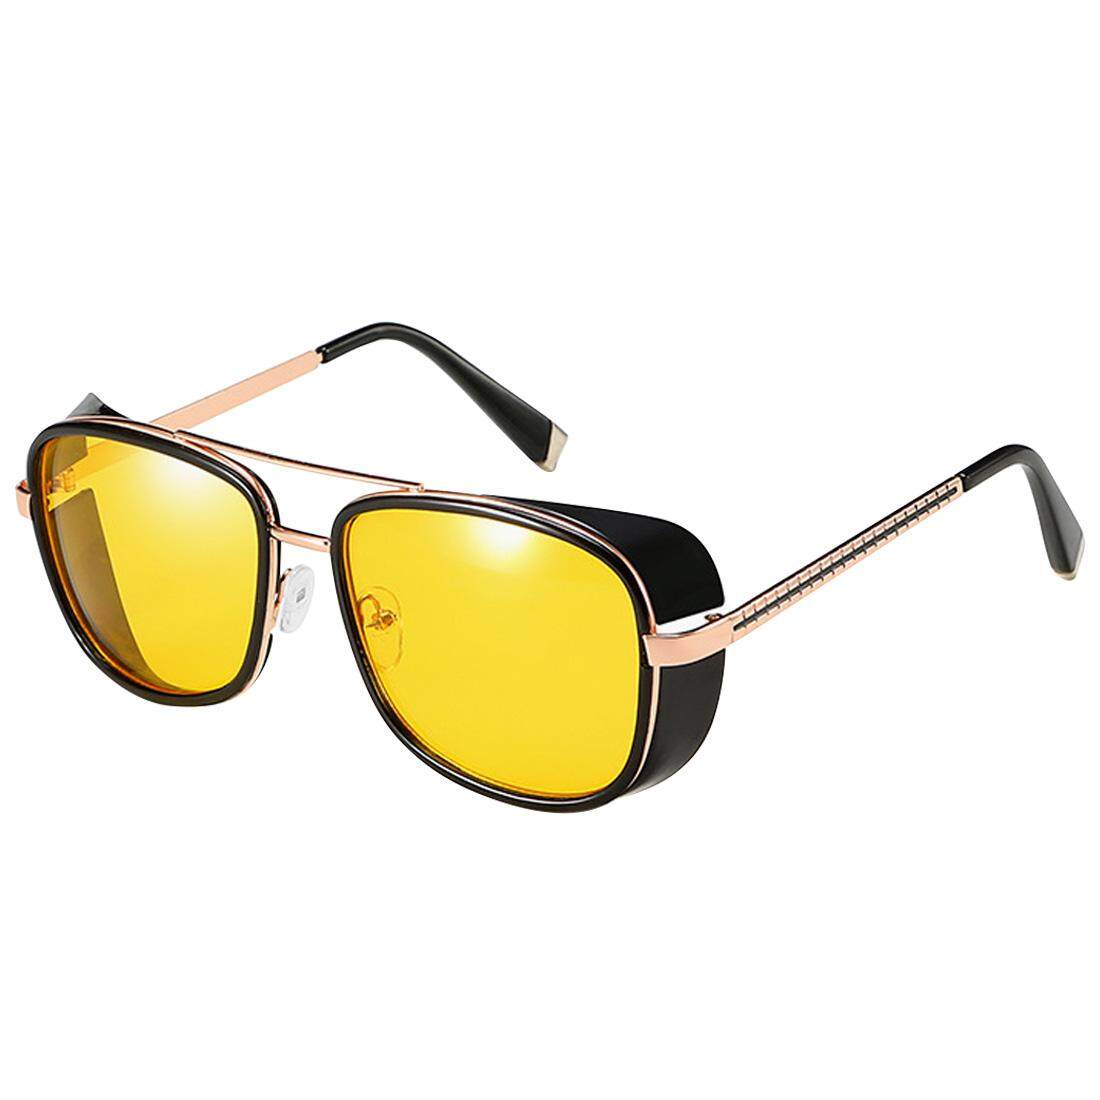 523846a70f Sunglasses For Men for sale - Mens Sunglasses online brands